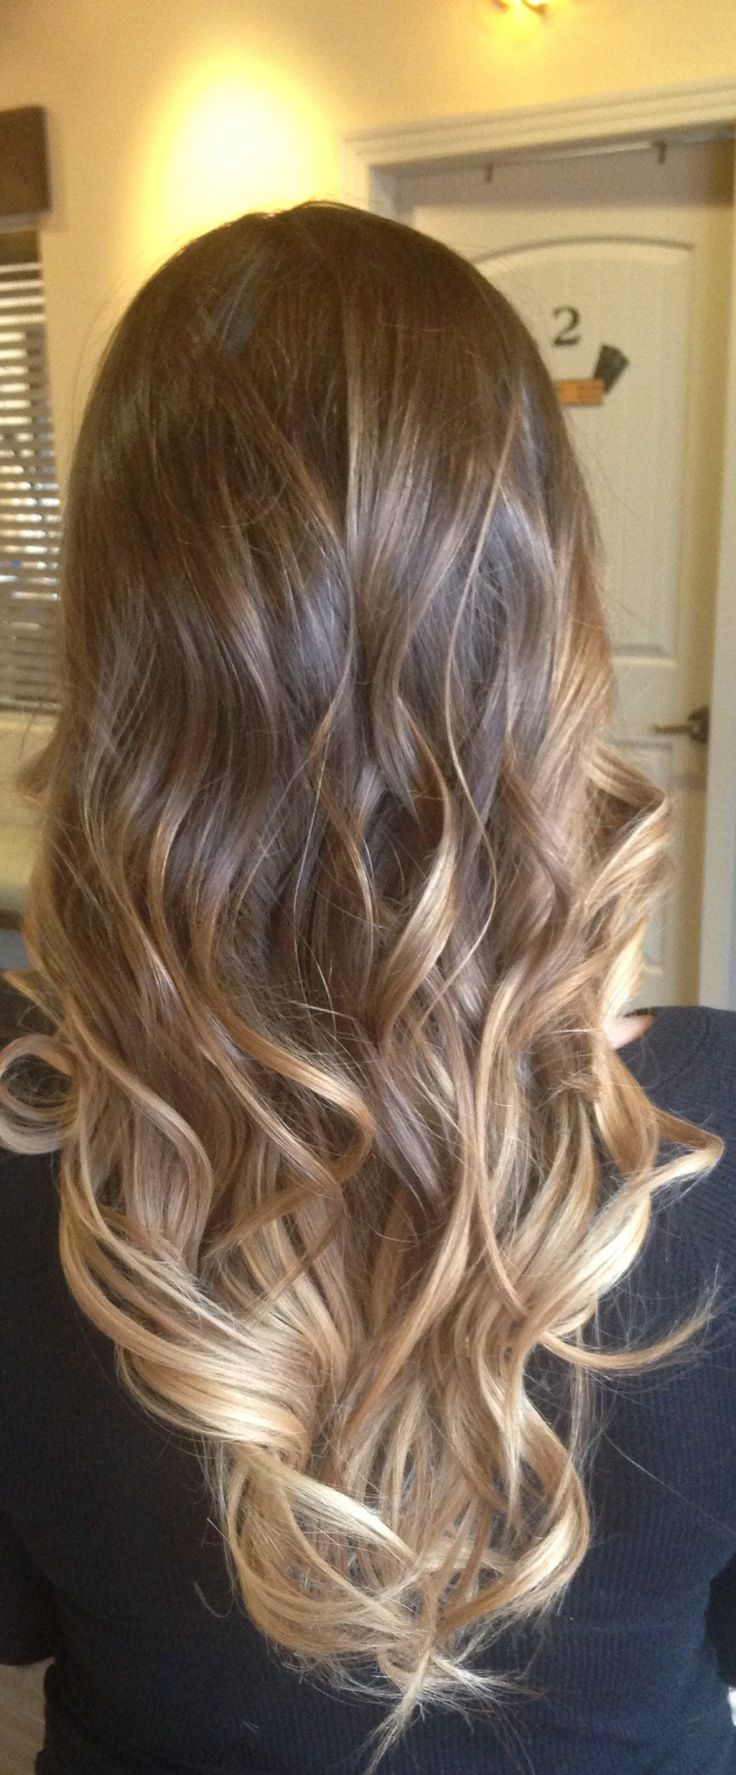 124 best dip dye hair extensions images on pinterest dip dye hair